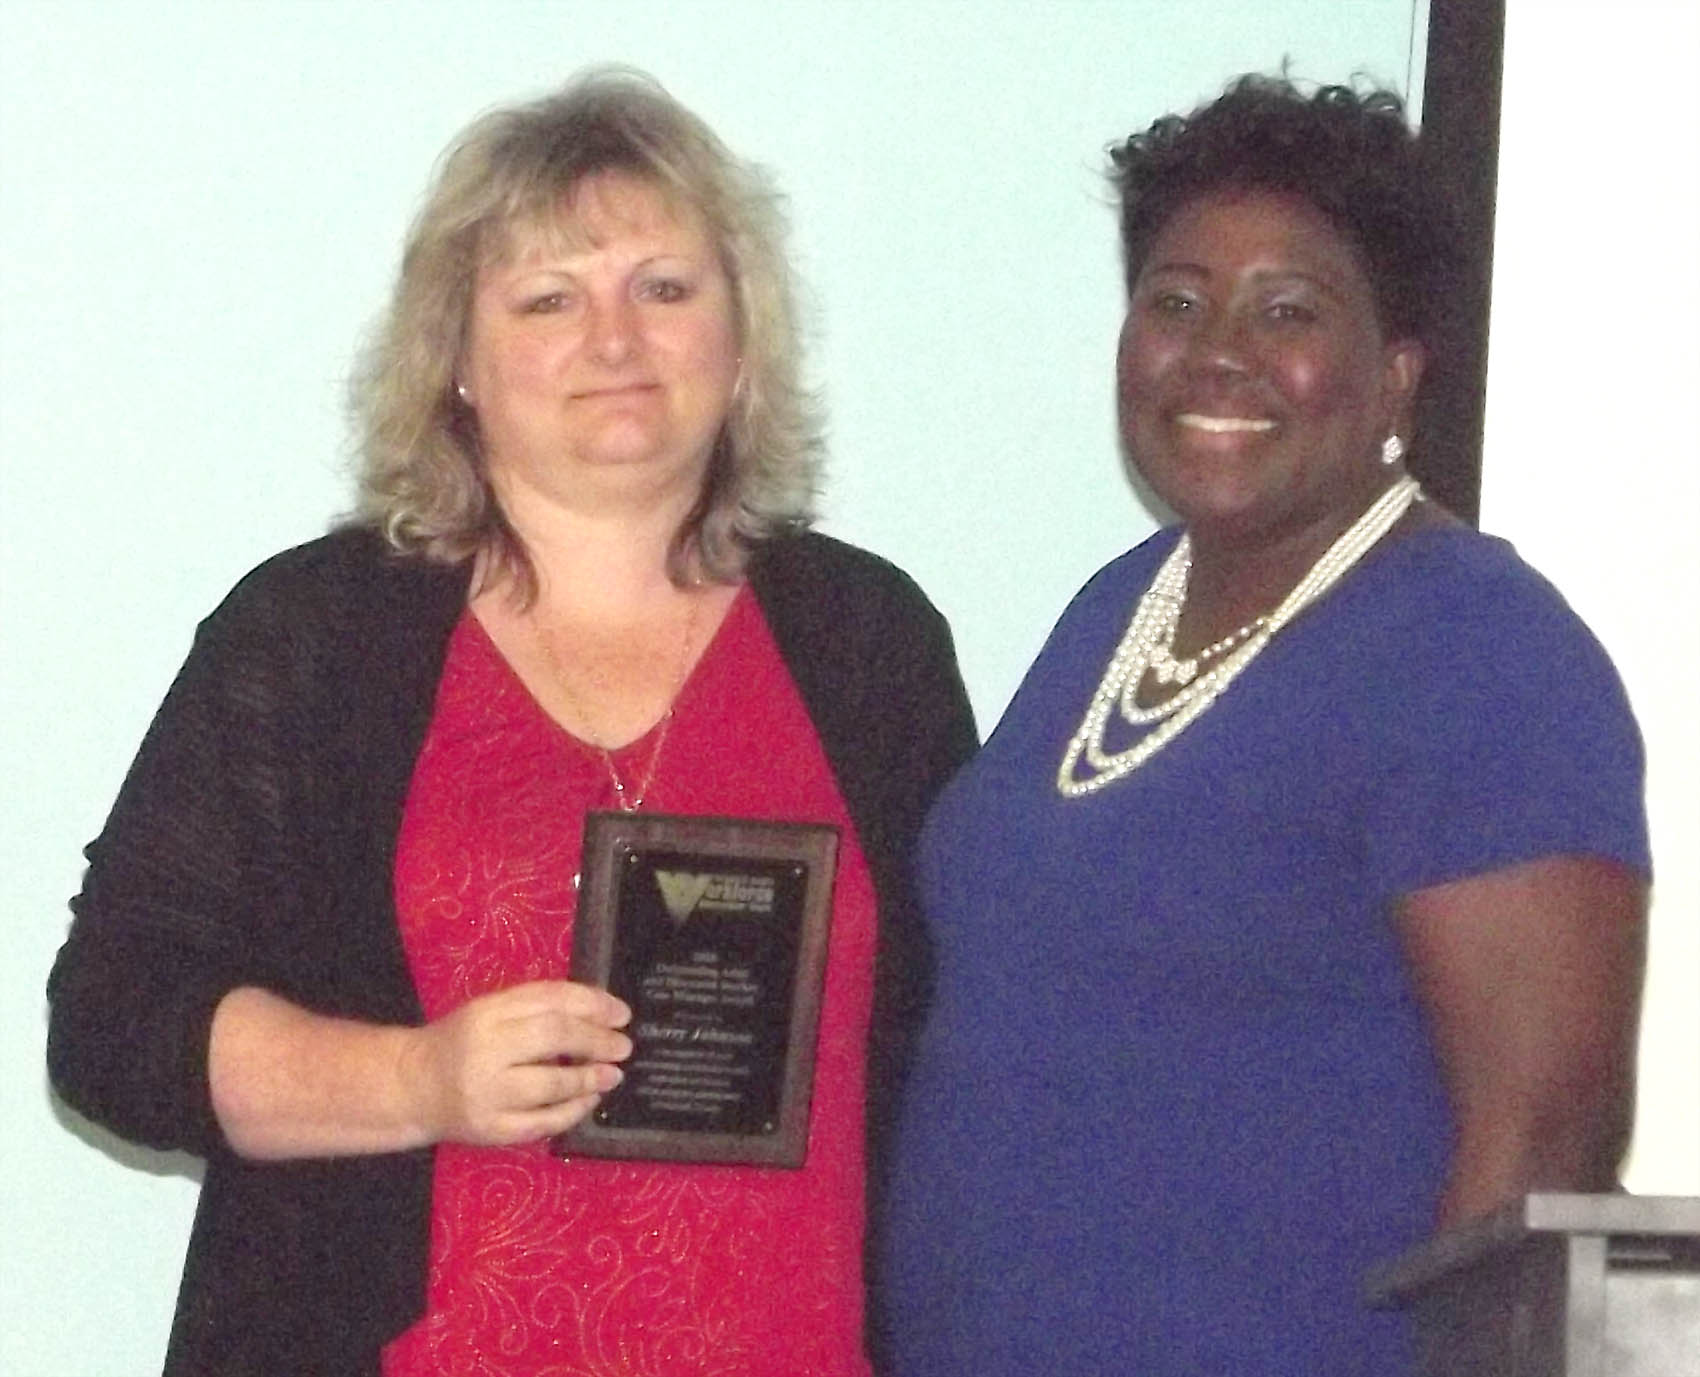 Click to enlarge,  Sherry Johnson, of Harnett County, received the Outstanding Adult/Dislocated Worker Case Manager Award at the 7th Annual Triangle South Workforce Development Board (TSWDB) Awards Banquet held Wednesday, Dec. 5, at the Central Carolina Community College Harnett Health Sciences Center in Lillington. Presenting the award was Kim Shaw, TSWDB Adult Services Coordinator.